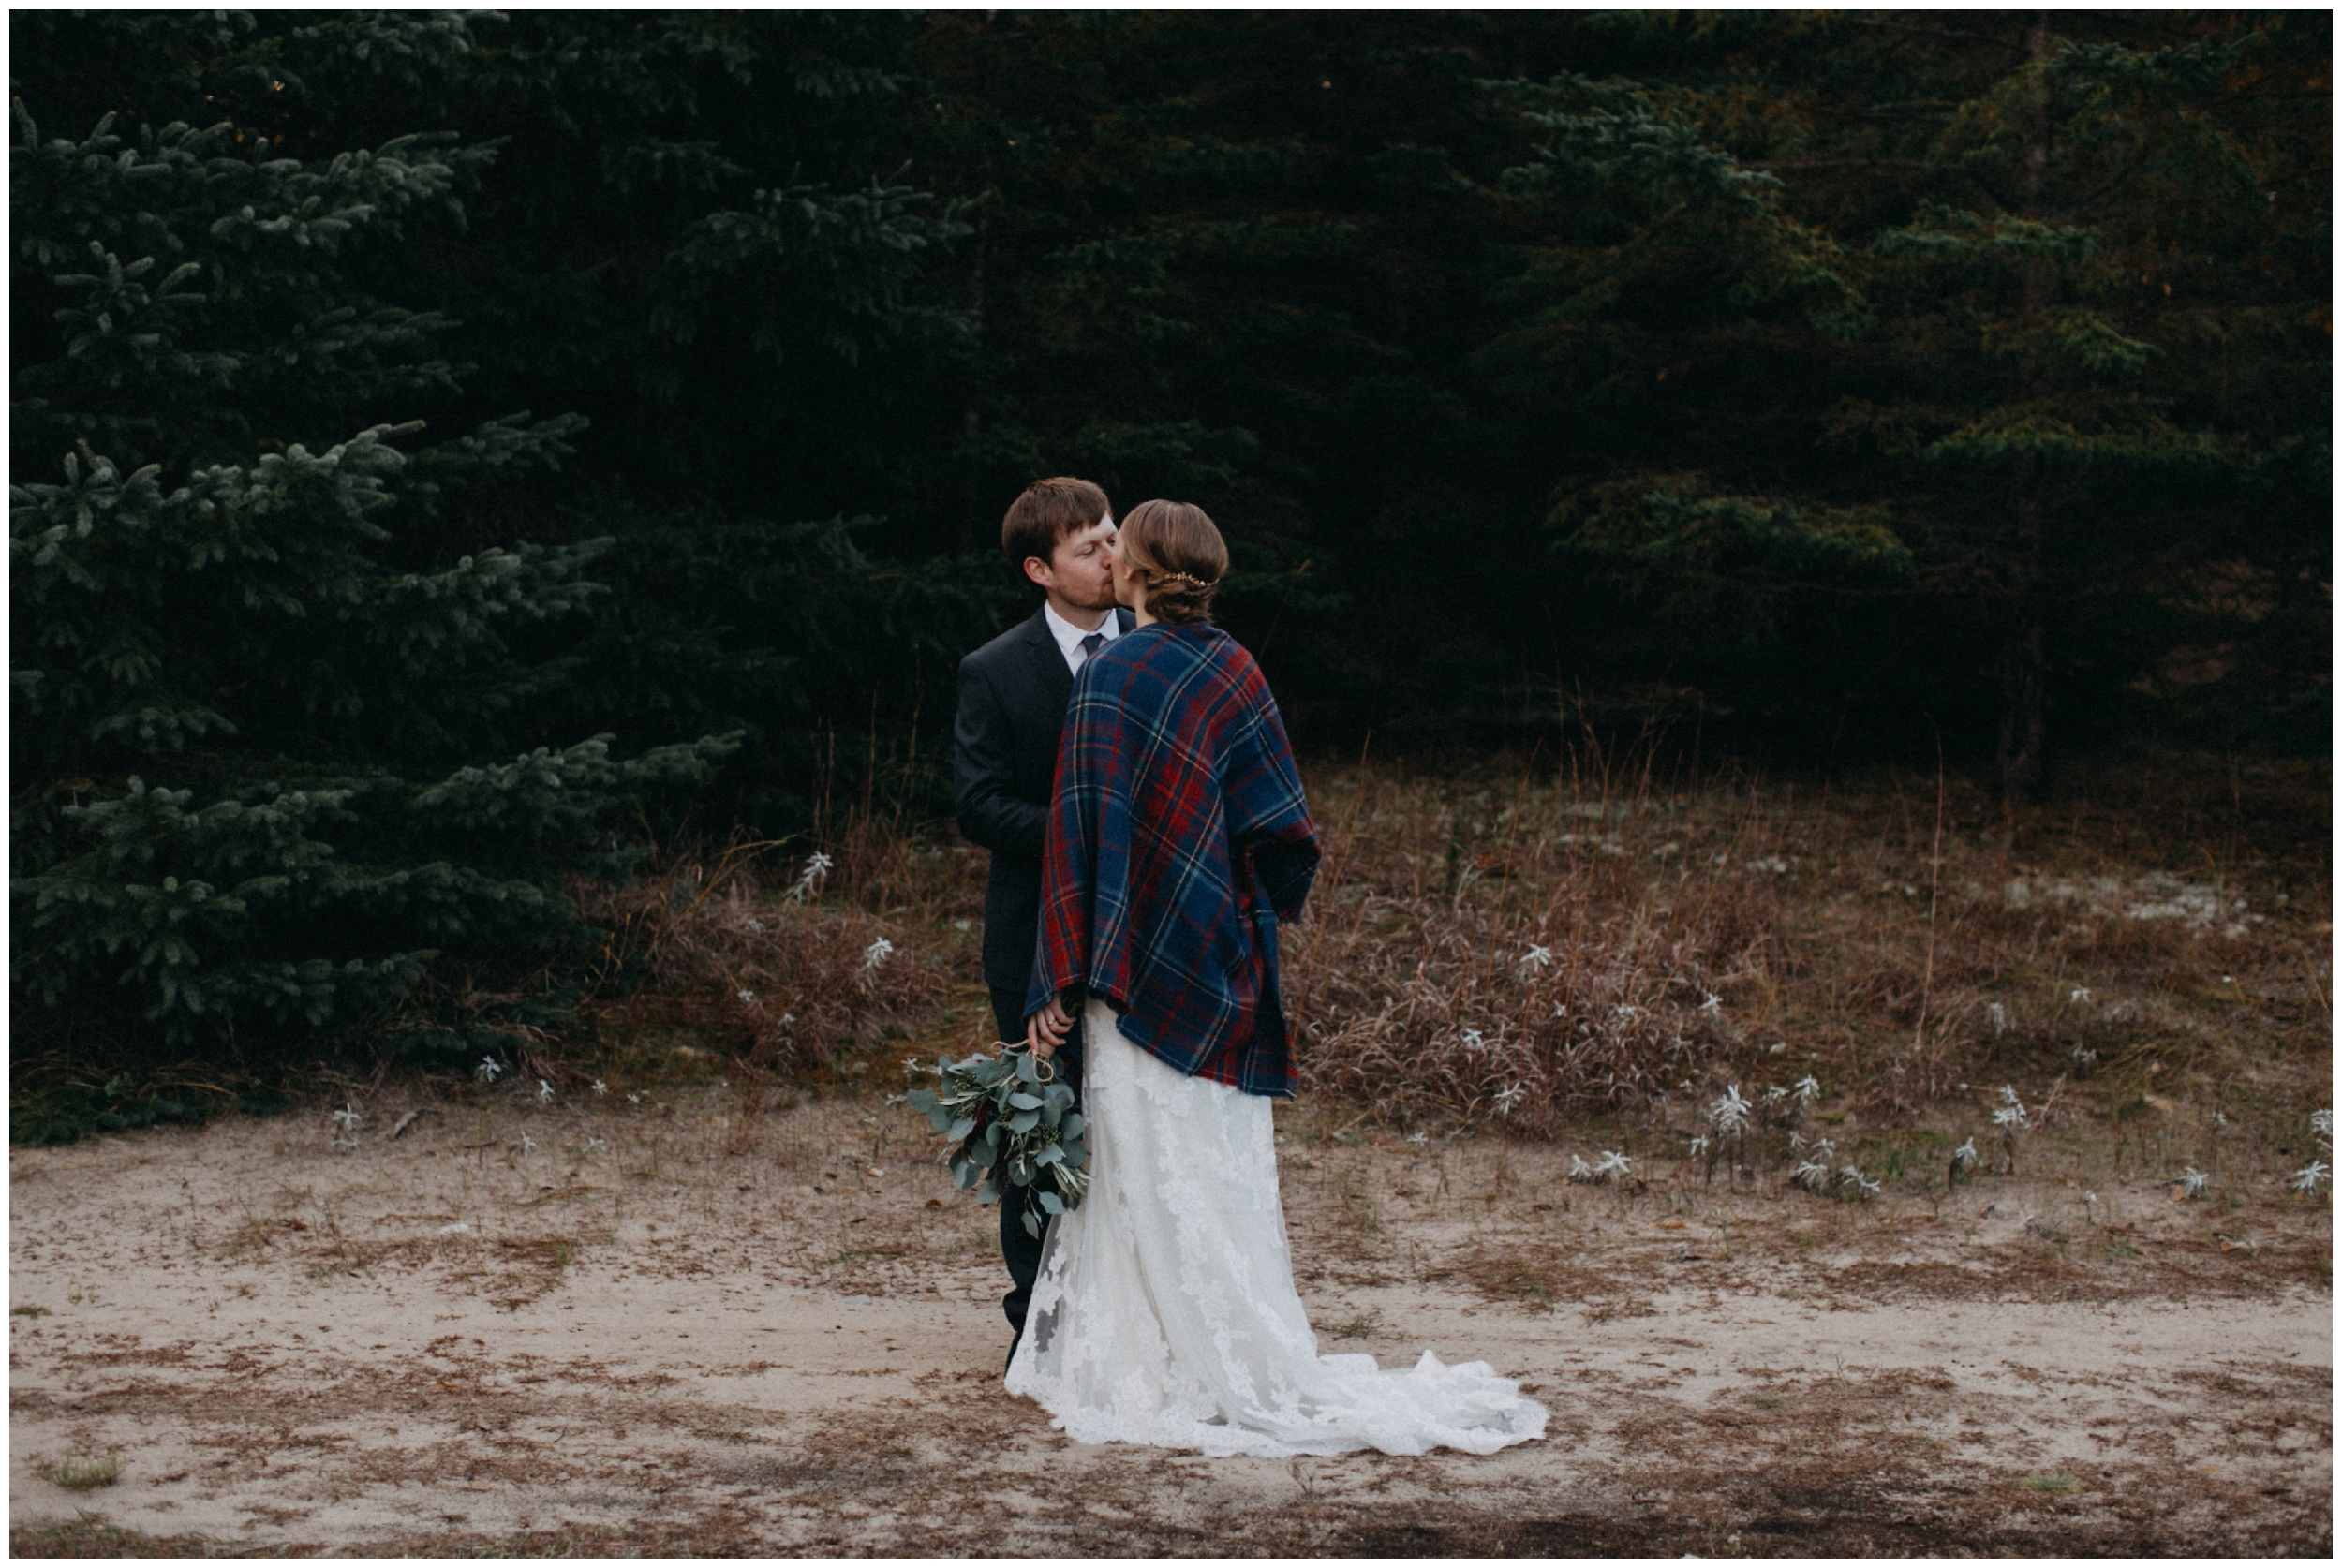 Moody and romantic fall wedding at the Northland Arboretum